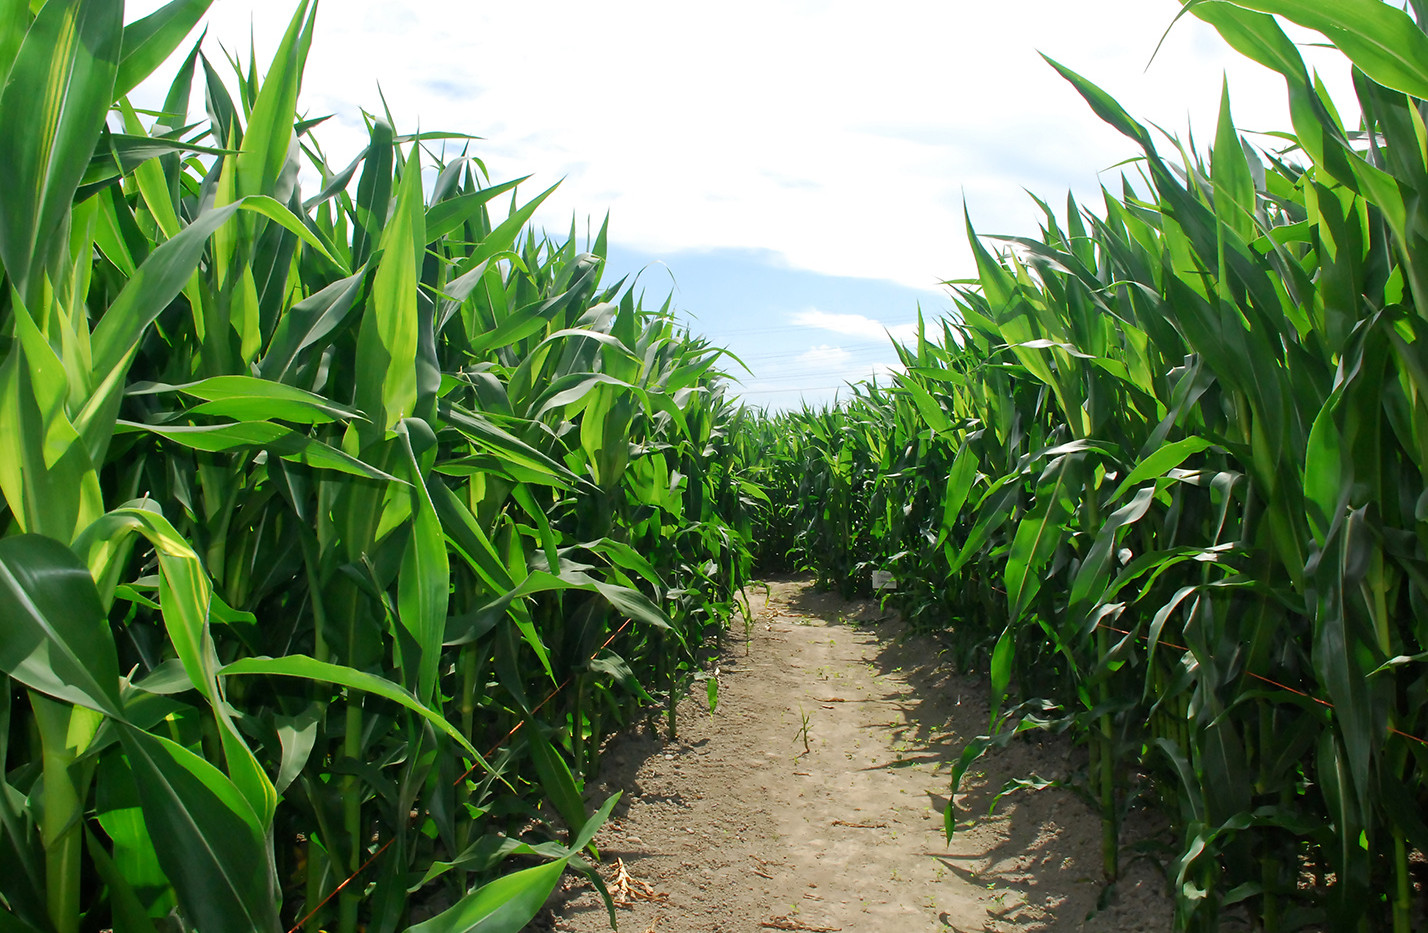 Random Corn Maze photo.jpg